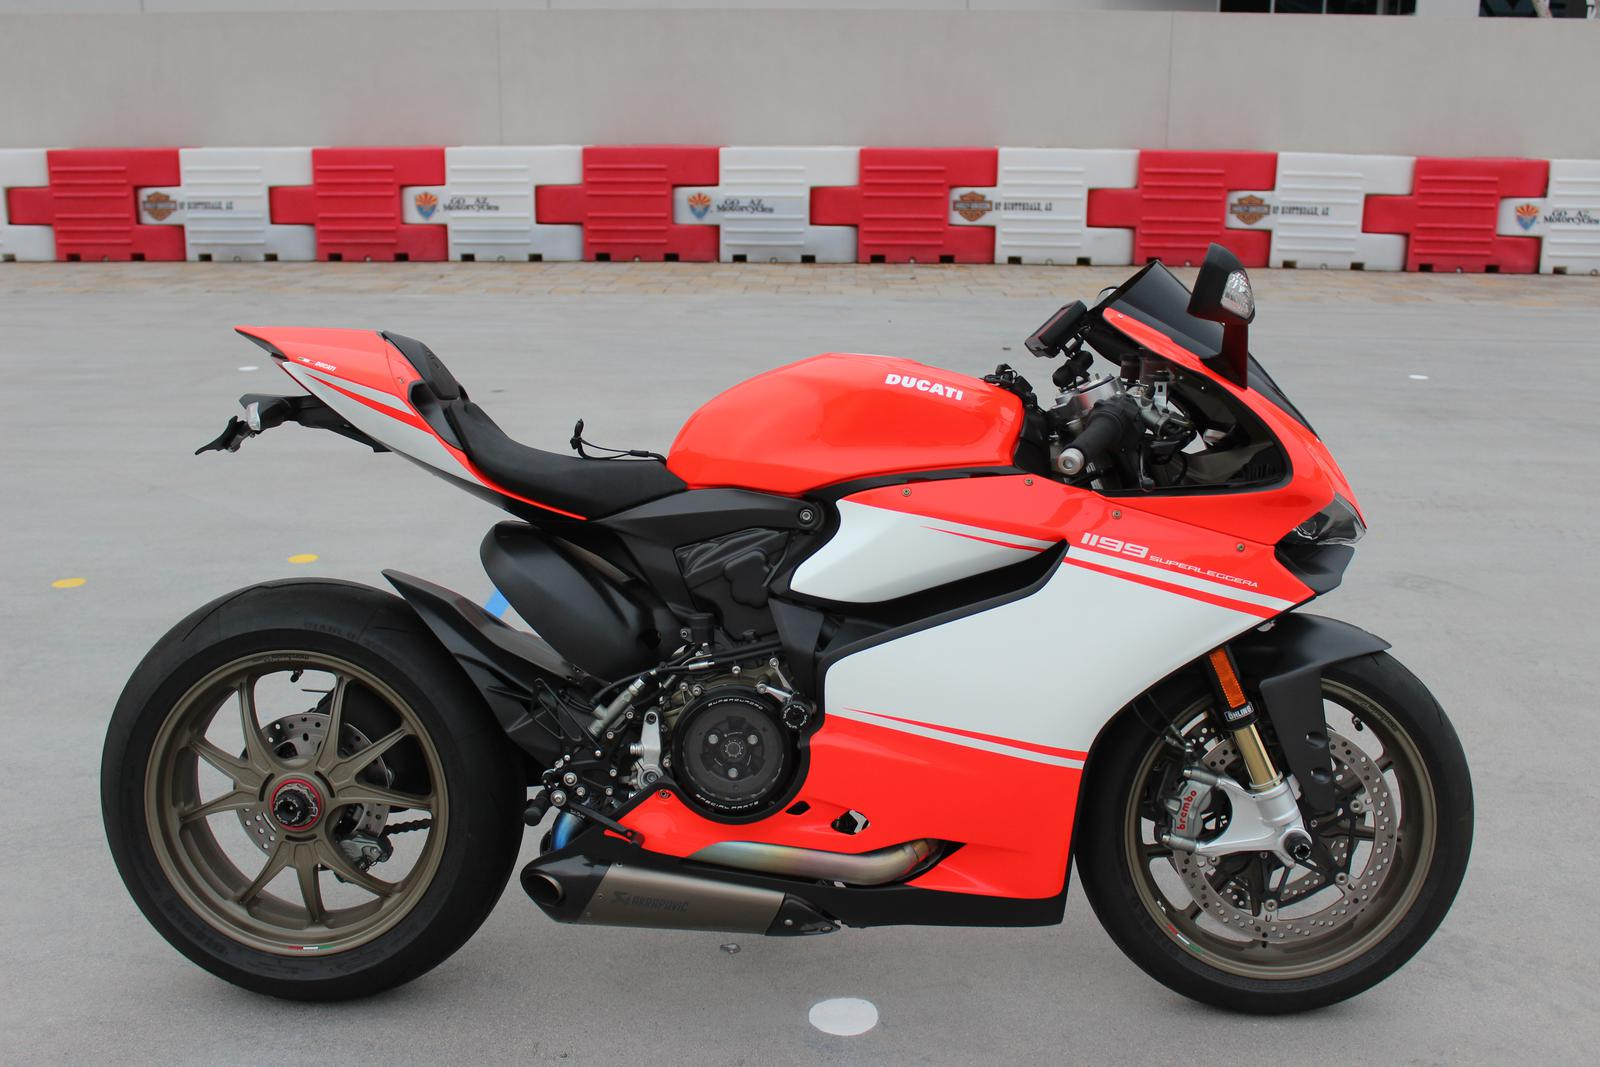 2014 Ducati 1199 SUPERLEGGERA for sale in Scottsdale, AZ | GO AZ  Motorcycles in Scottsdale (480) 609-1800